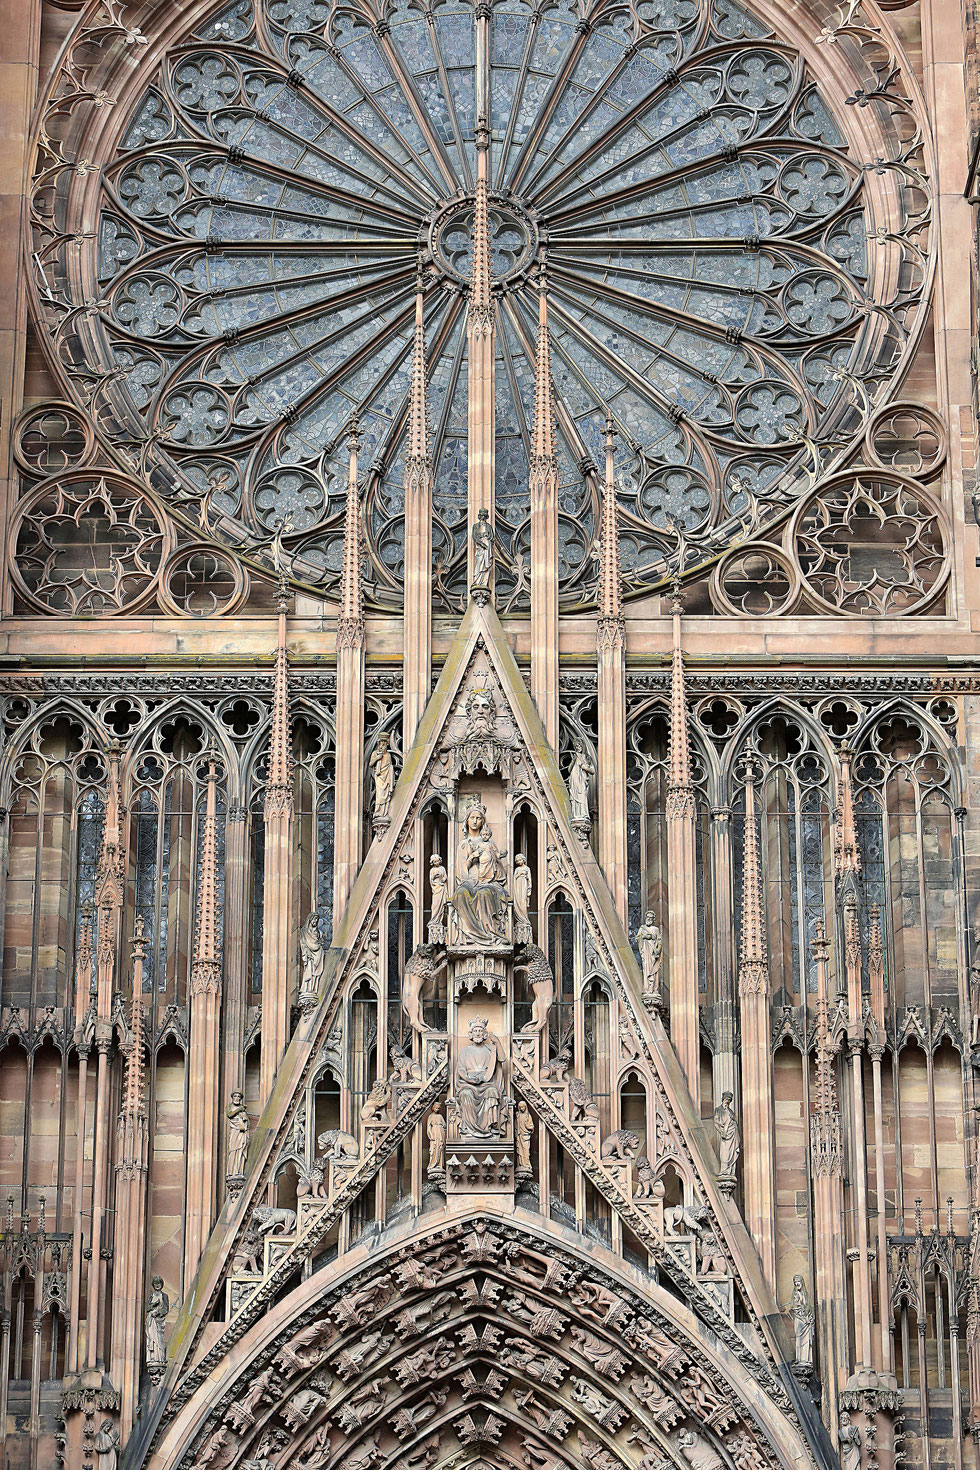 Western rose window. Central portal. 1250. Our Lady of Strasbourg Cathedral.